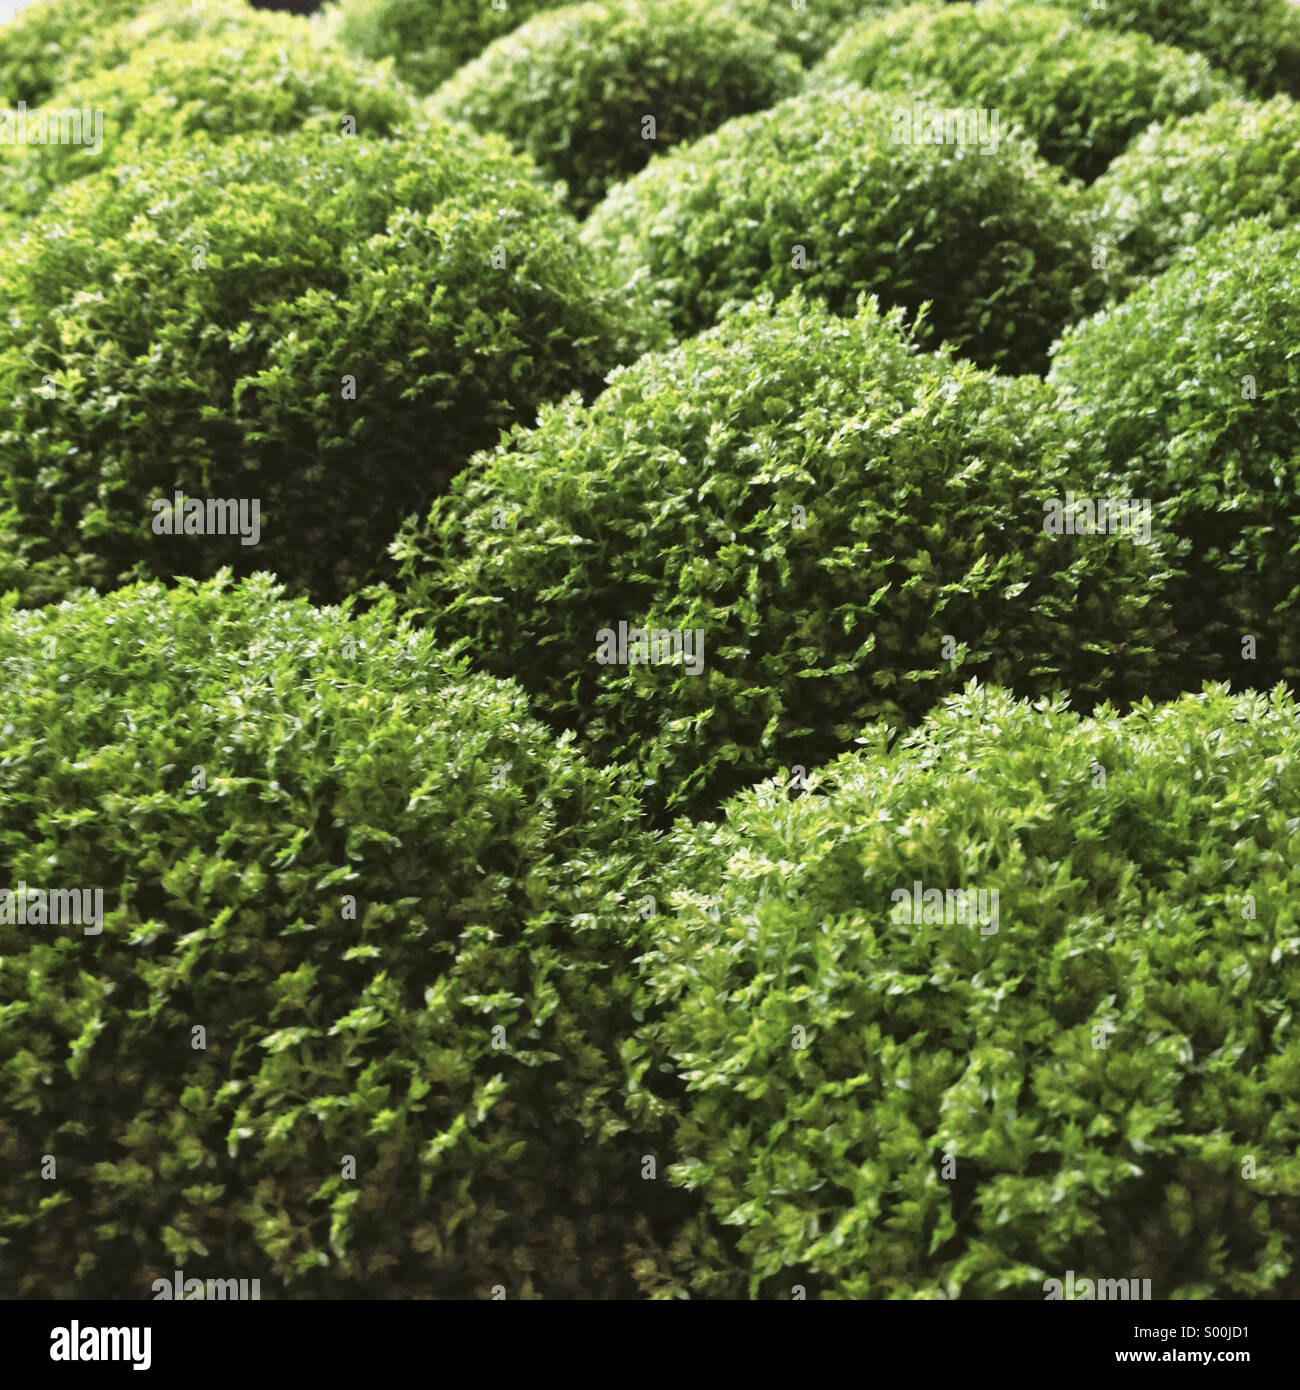 Ornamental bush - Stock Image